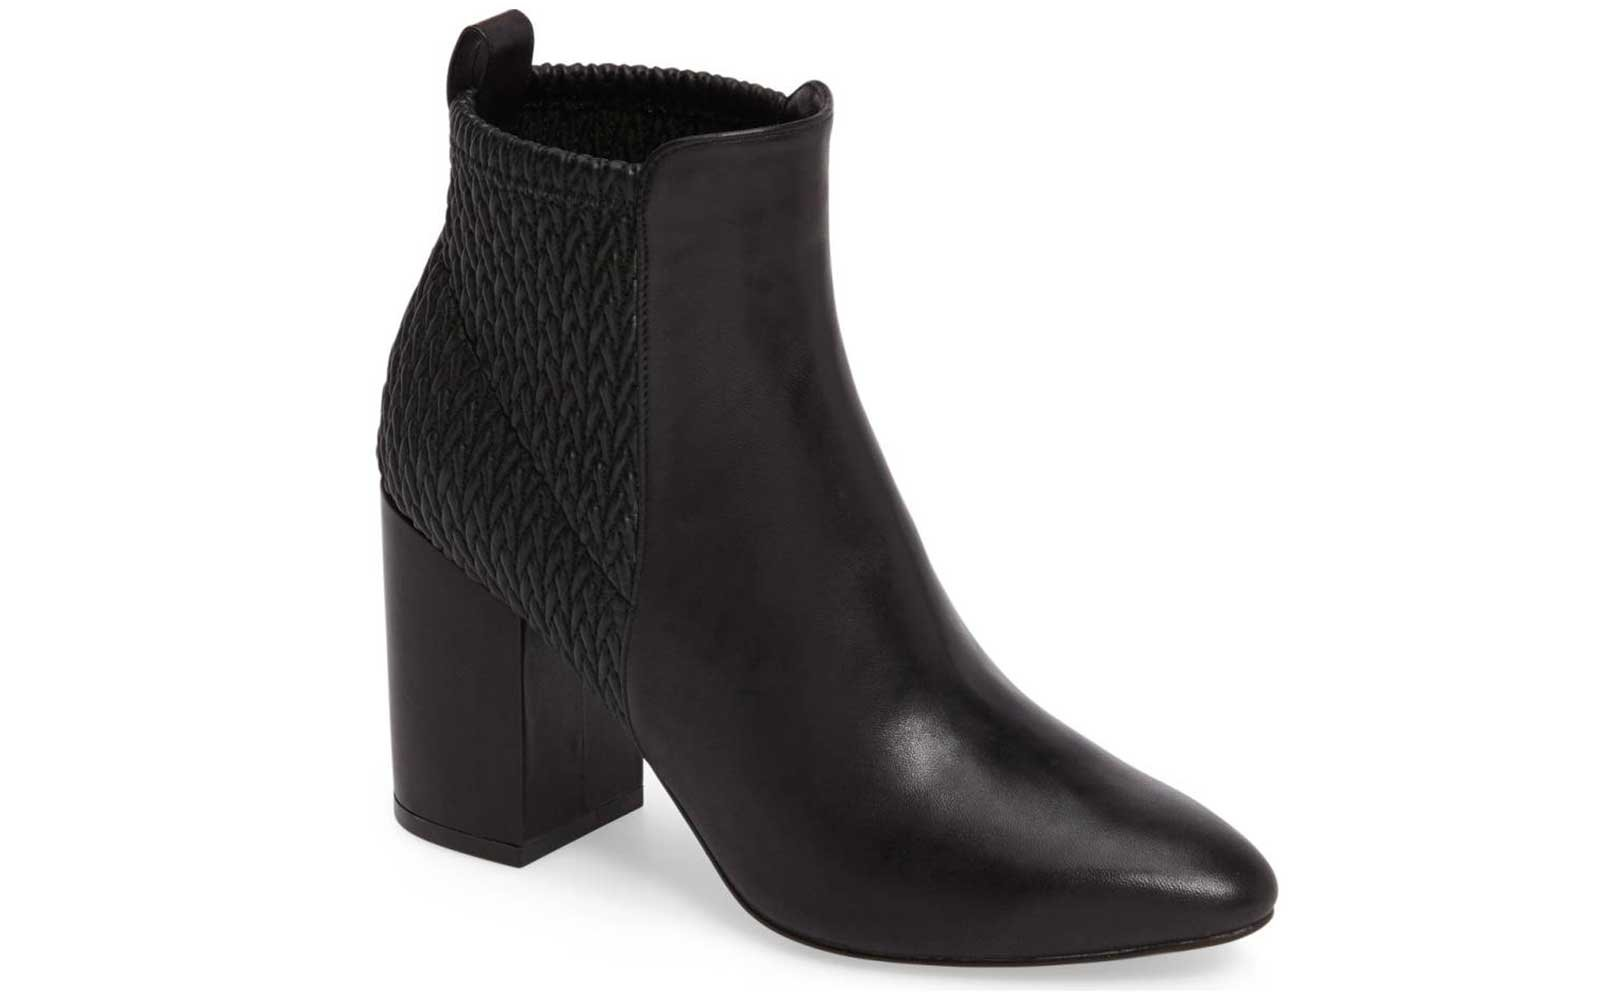 Boots for Travel